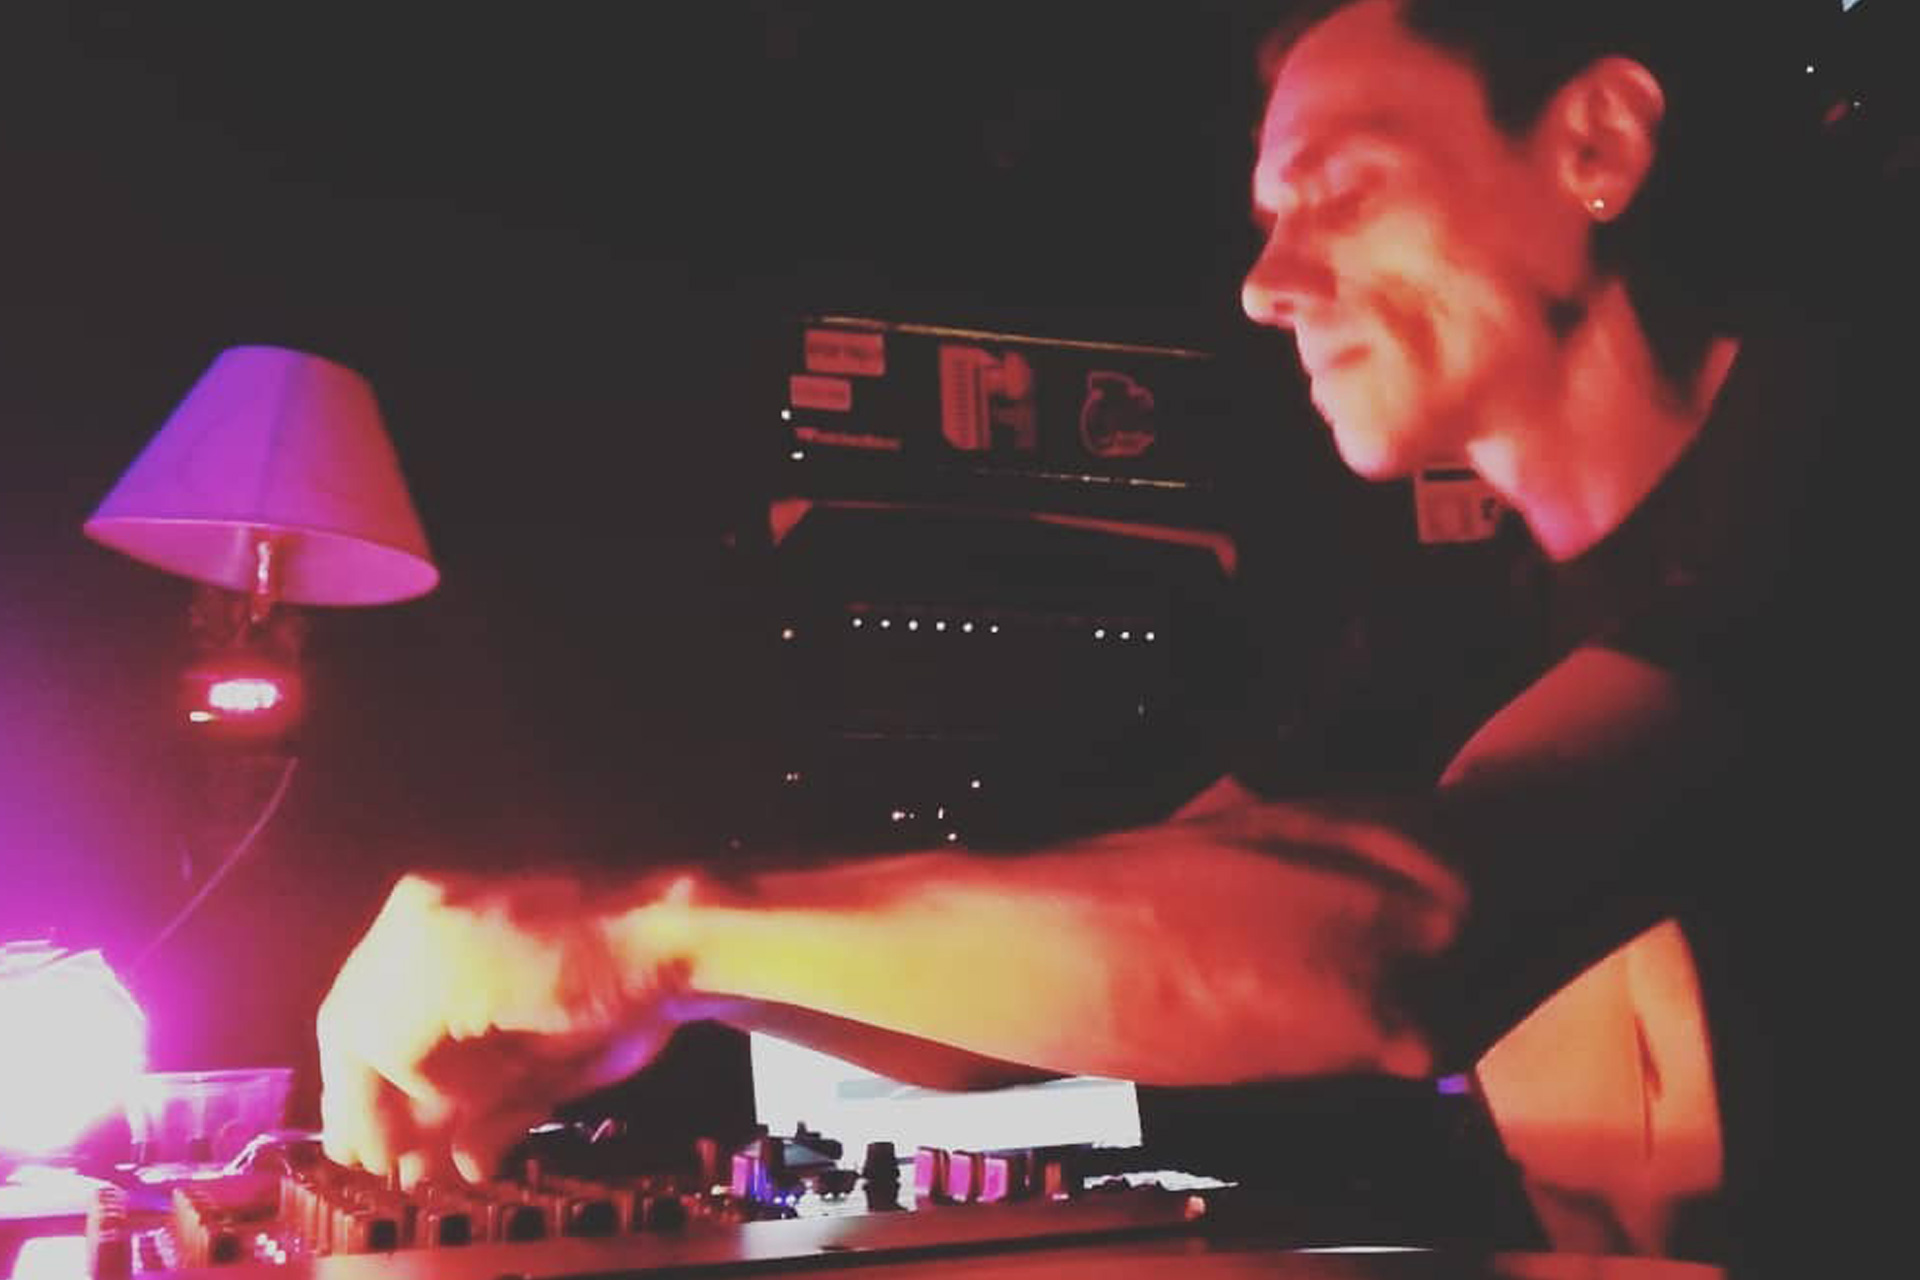 Stuntproject: Creating an Intense Psychedelic Adventure on Twitch and in Clubs